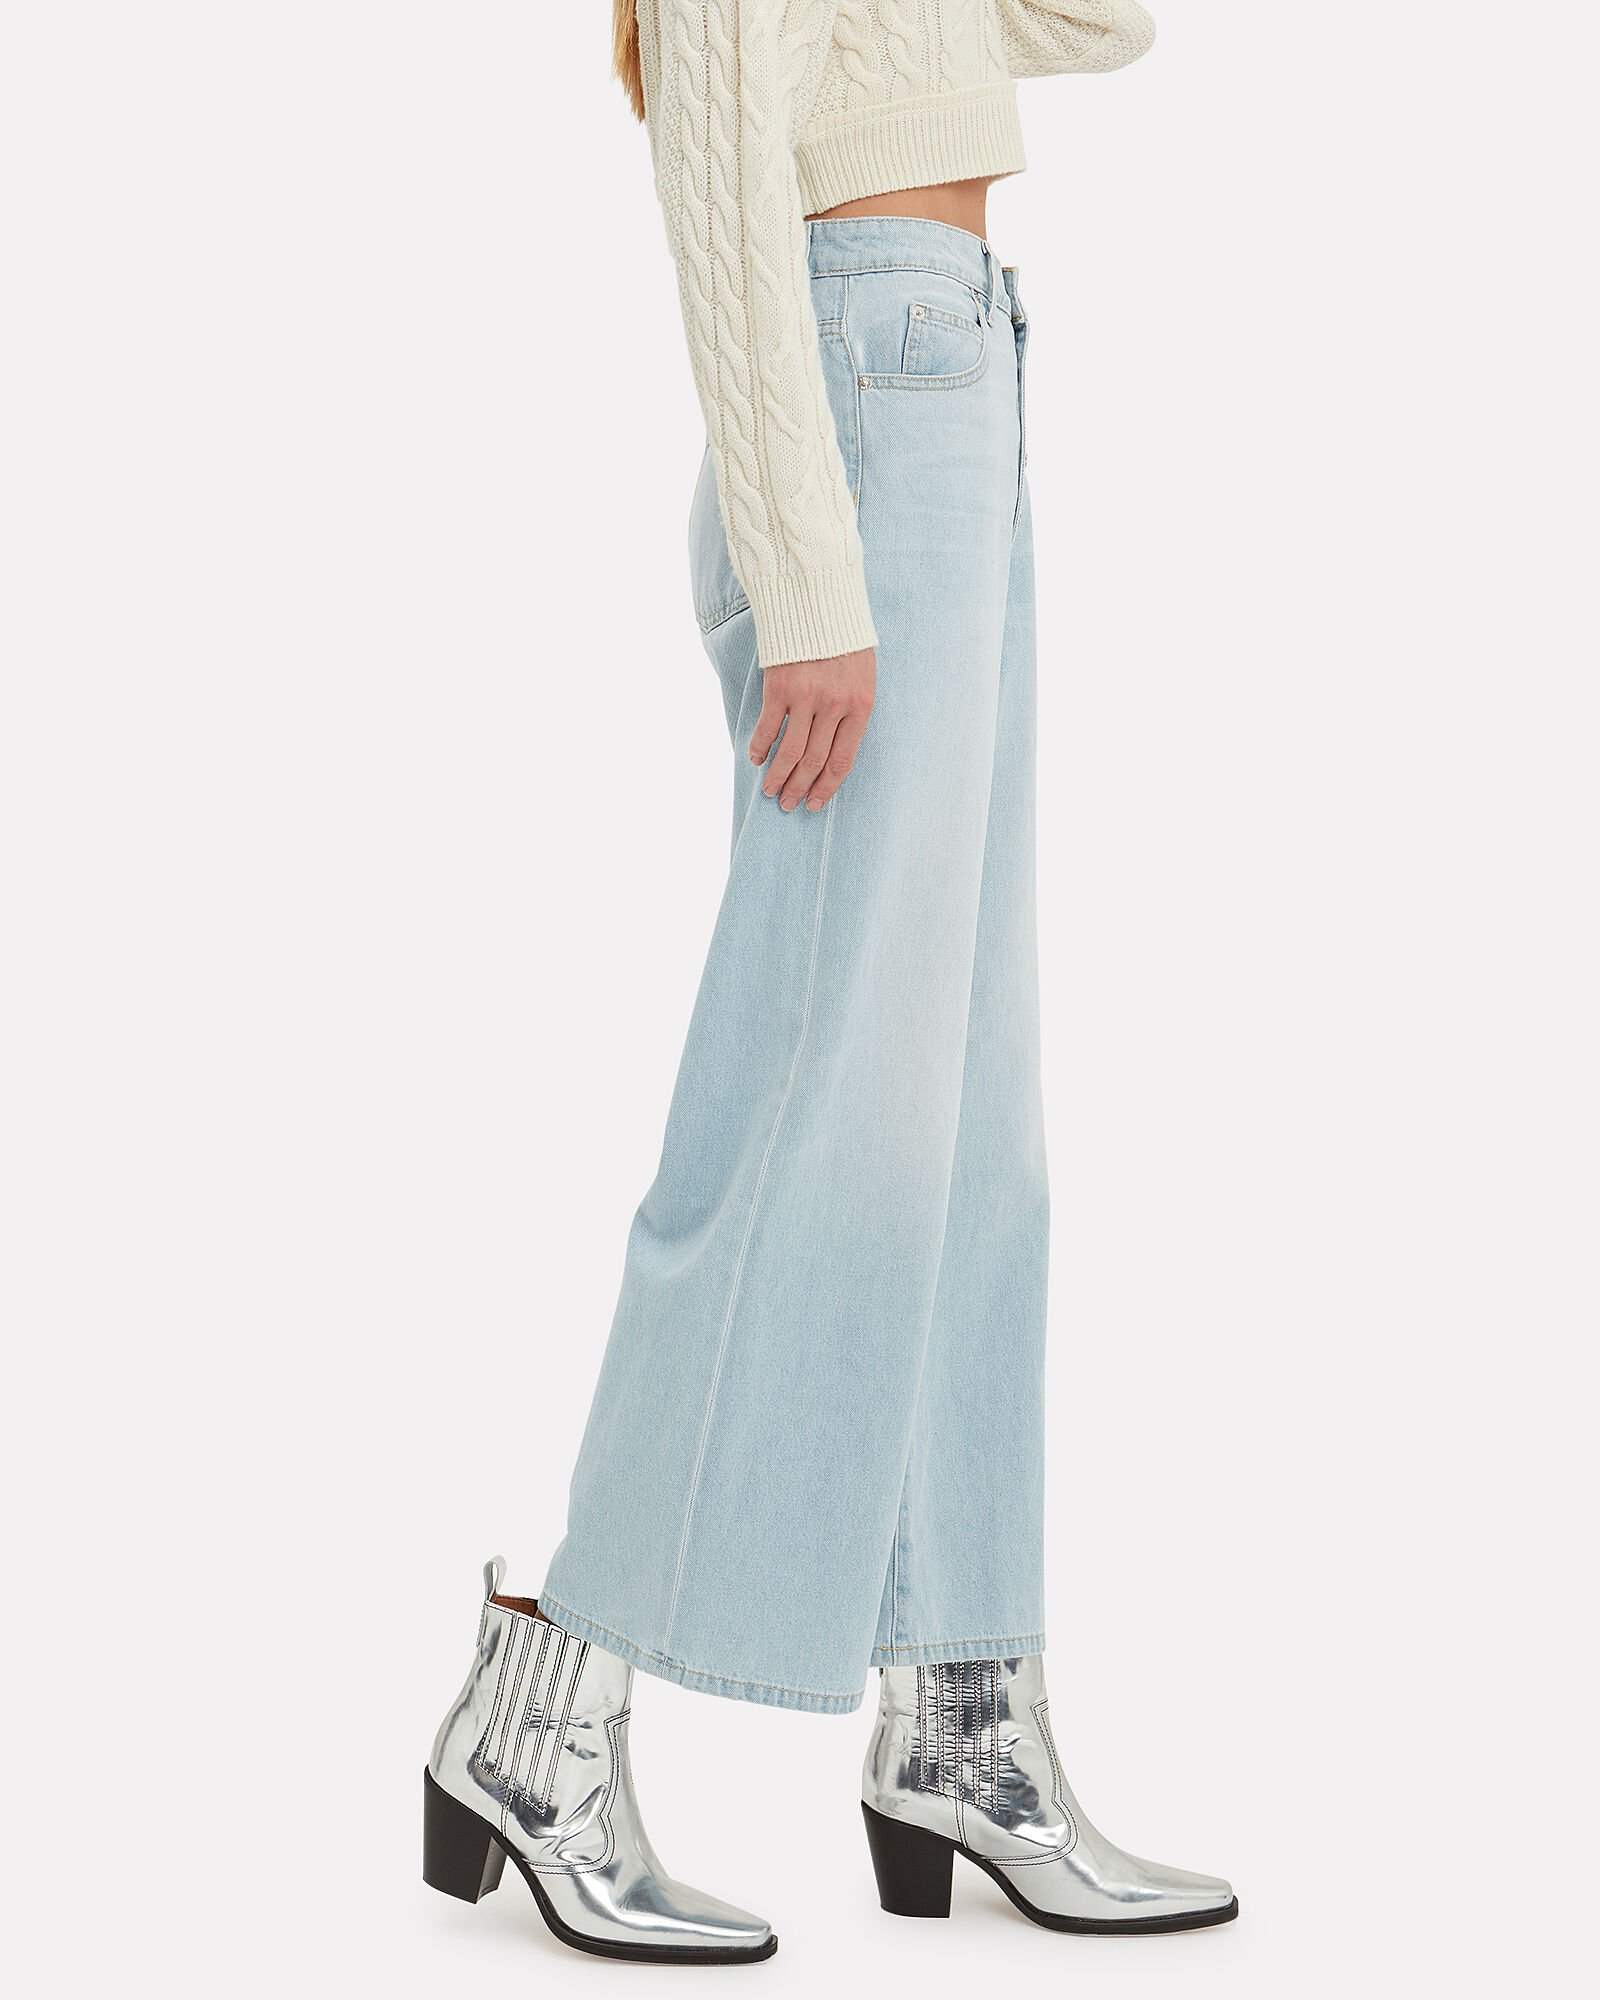 Charlotte Nolita Jeans, LIGHT WASH DENIM, hi-res